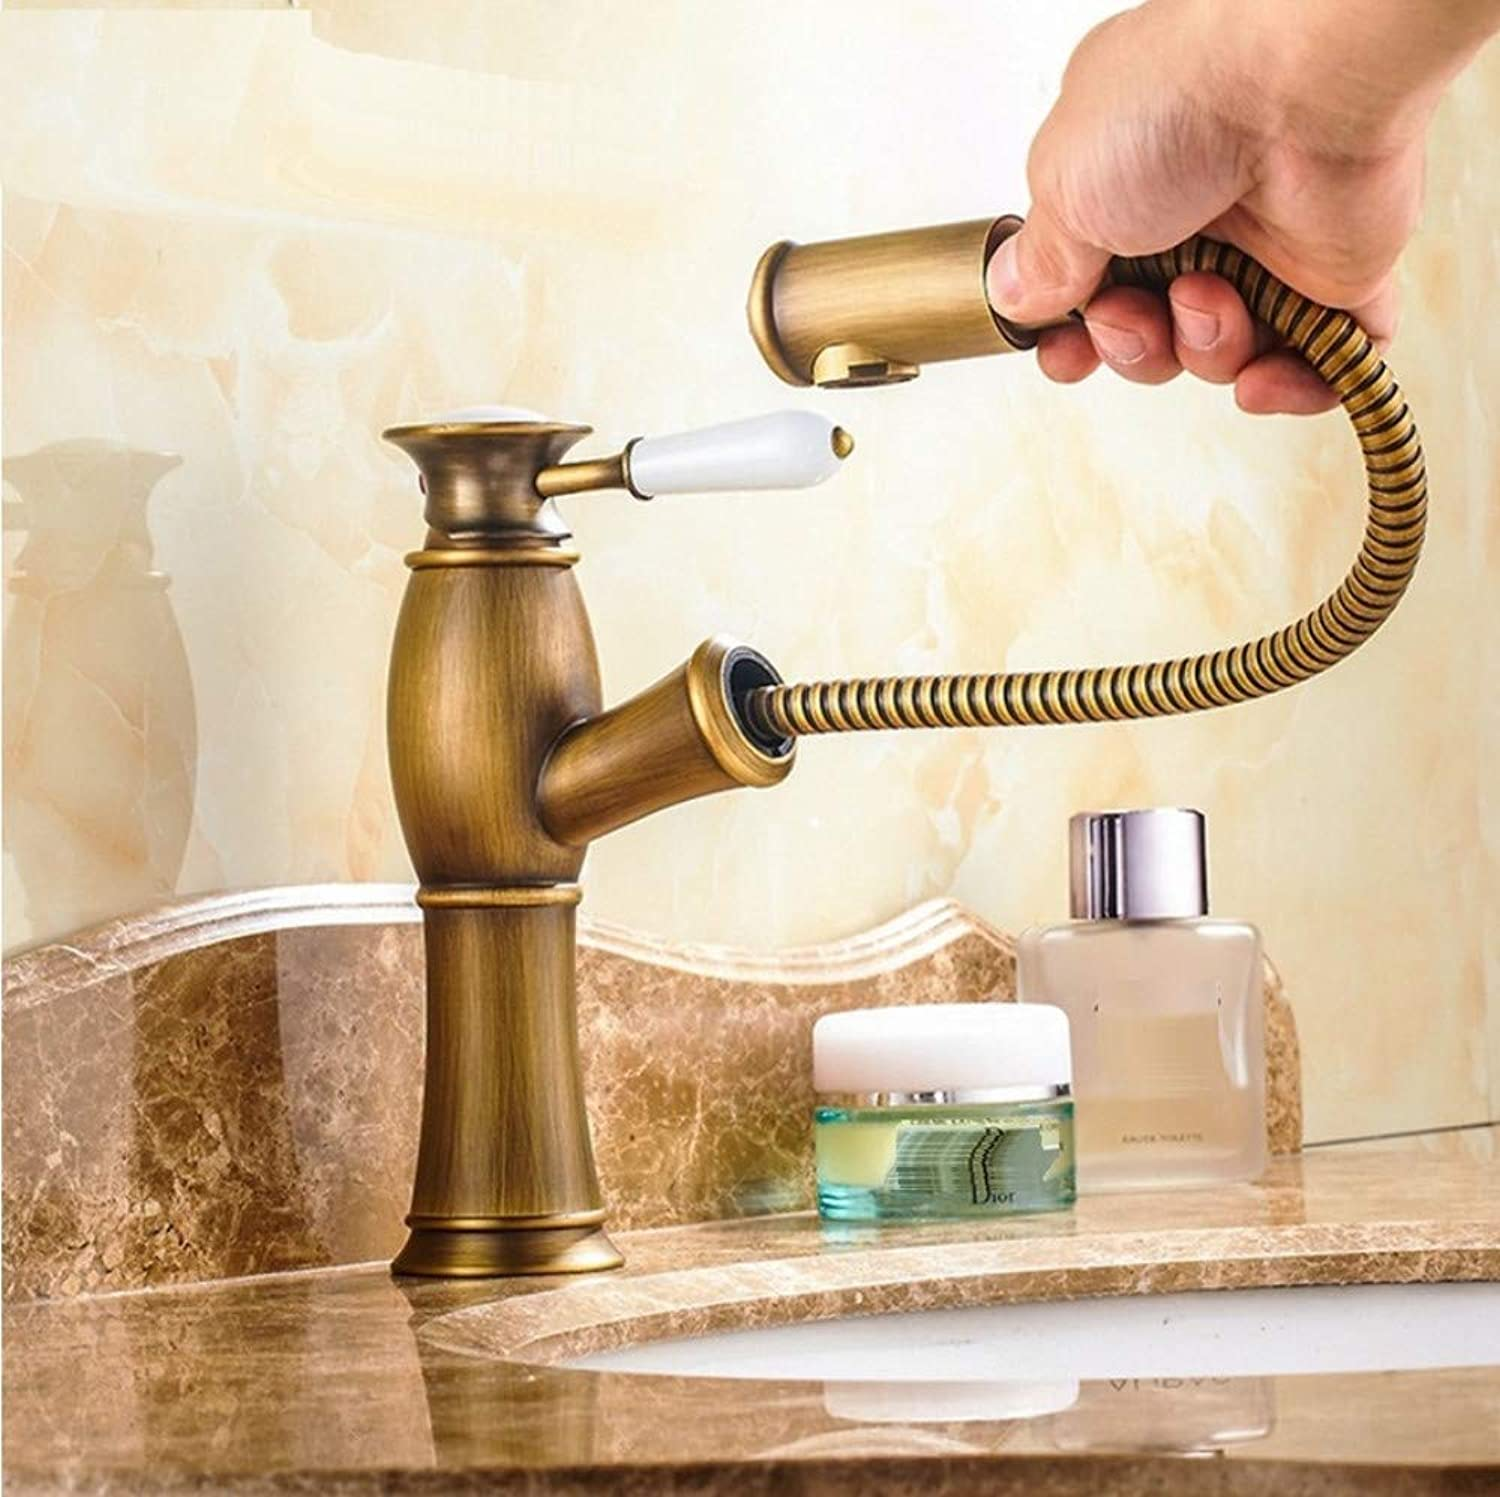 Dwthh Pull Out Basin Sink Faucets Mixer Tap Brass Bathroom Antique Bronze Faucet Pull Out Modern Bath Black gold